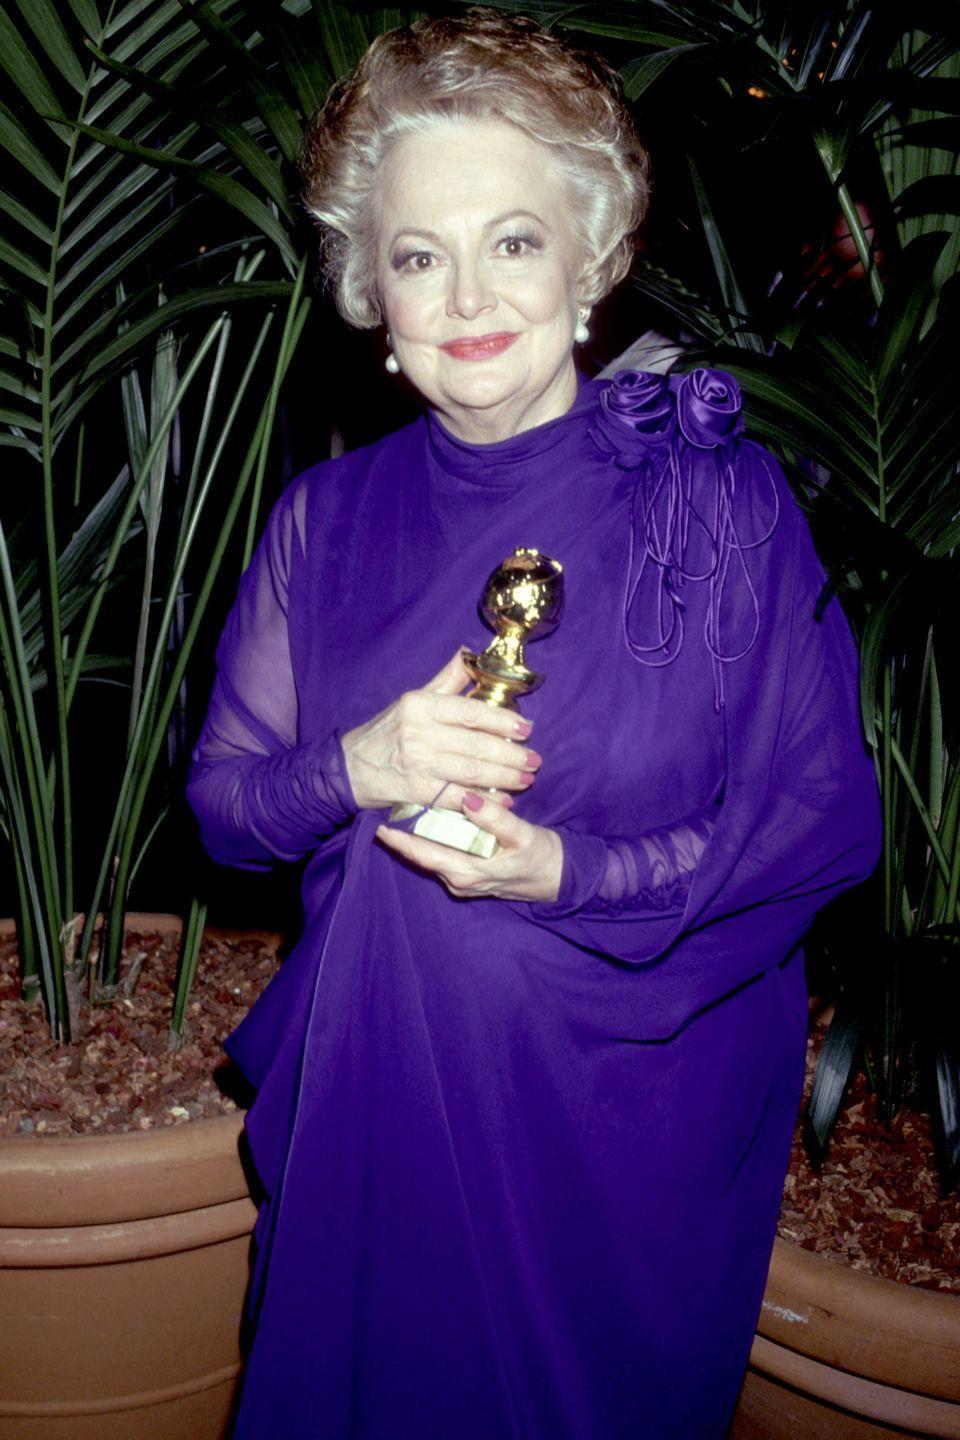 <p>At the Golden Globe Awards, where she won Best Performance by an Actress in a Supporting Role in a Series, Miniseries or Motion Picture Made for Television for her performance in <em>Anastasia: The Mystery of Anna</em>.</p>